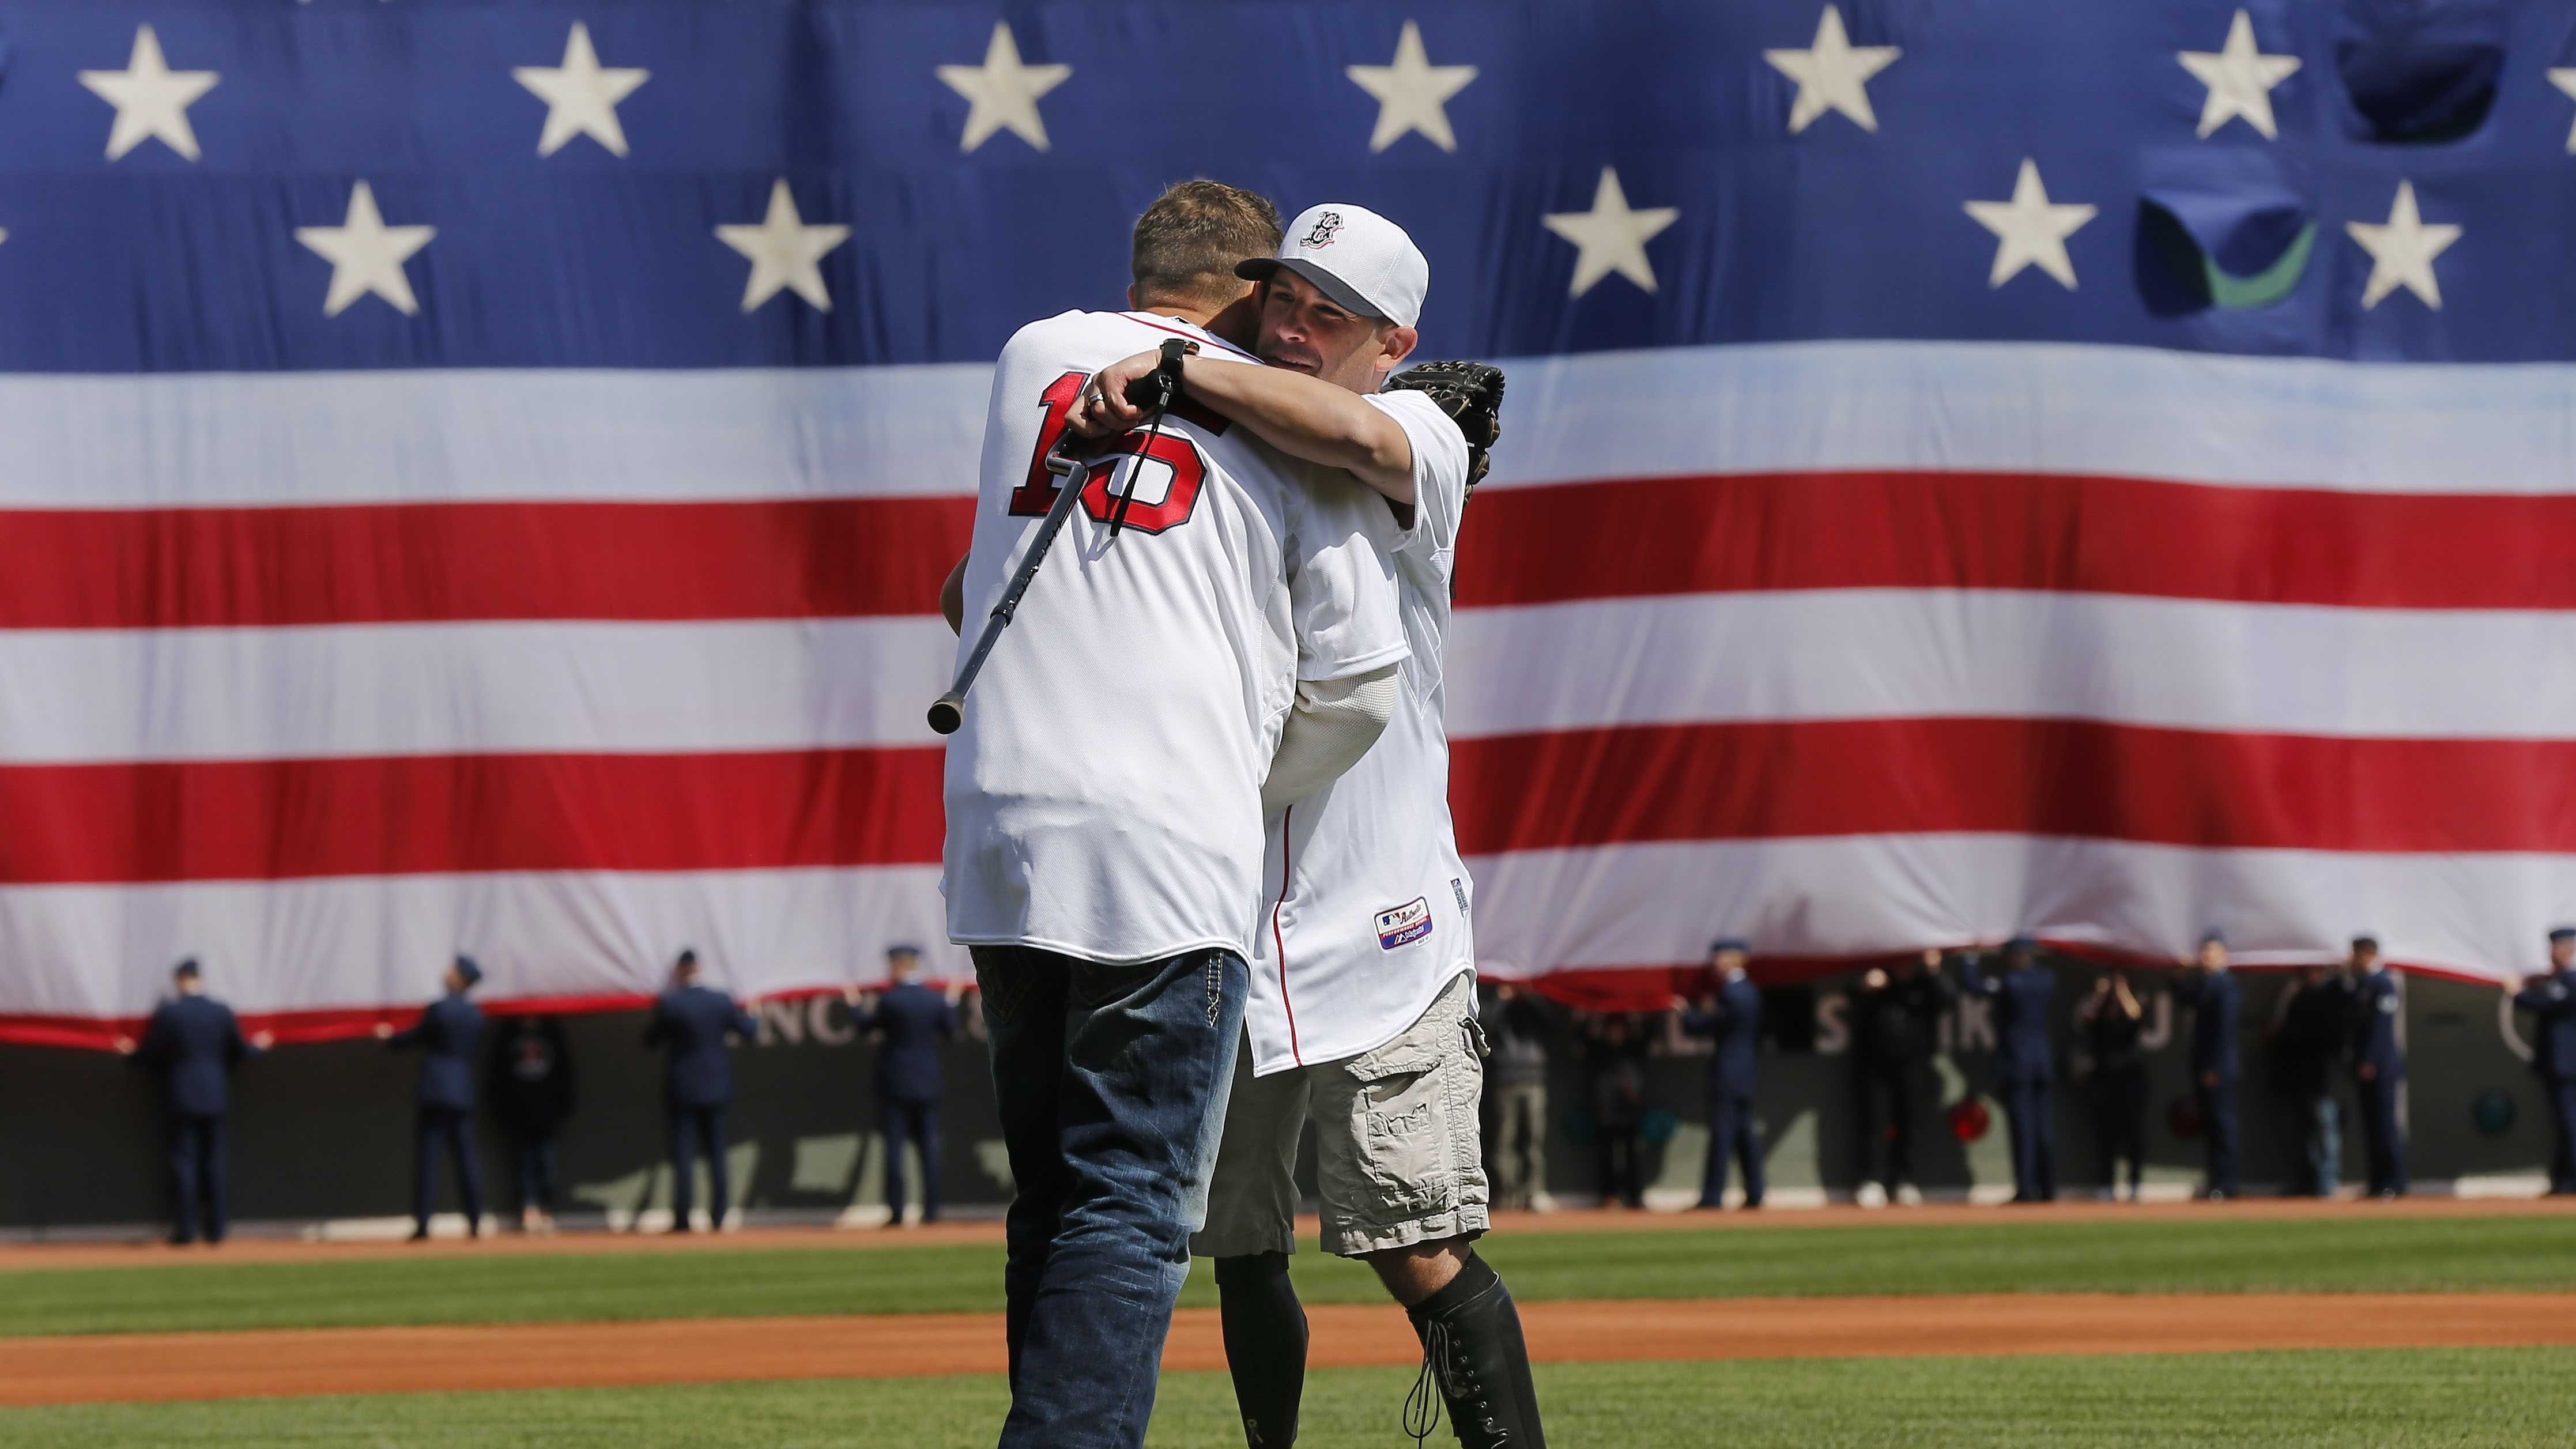 Boston Marathon bombing survivor Marc Fucarile hugs former Red Sox player Kevin Millar after throwing out the ceremonial first pitch before the baseball game between the Boston Red Sox and the Baltimore Orioles at Fenway Park in Boston Monday, April 21, 2014.